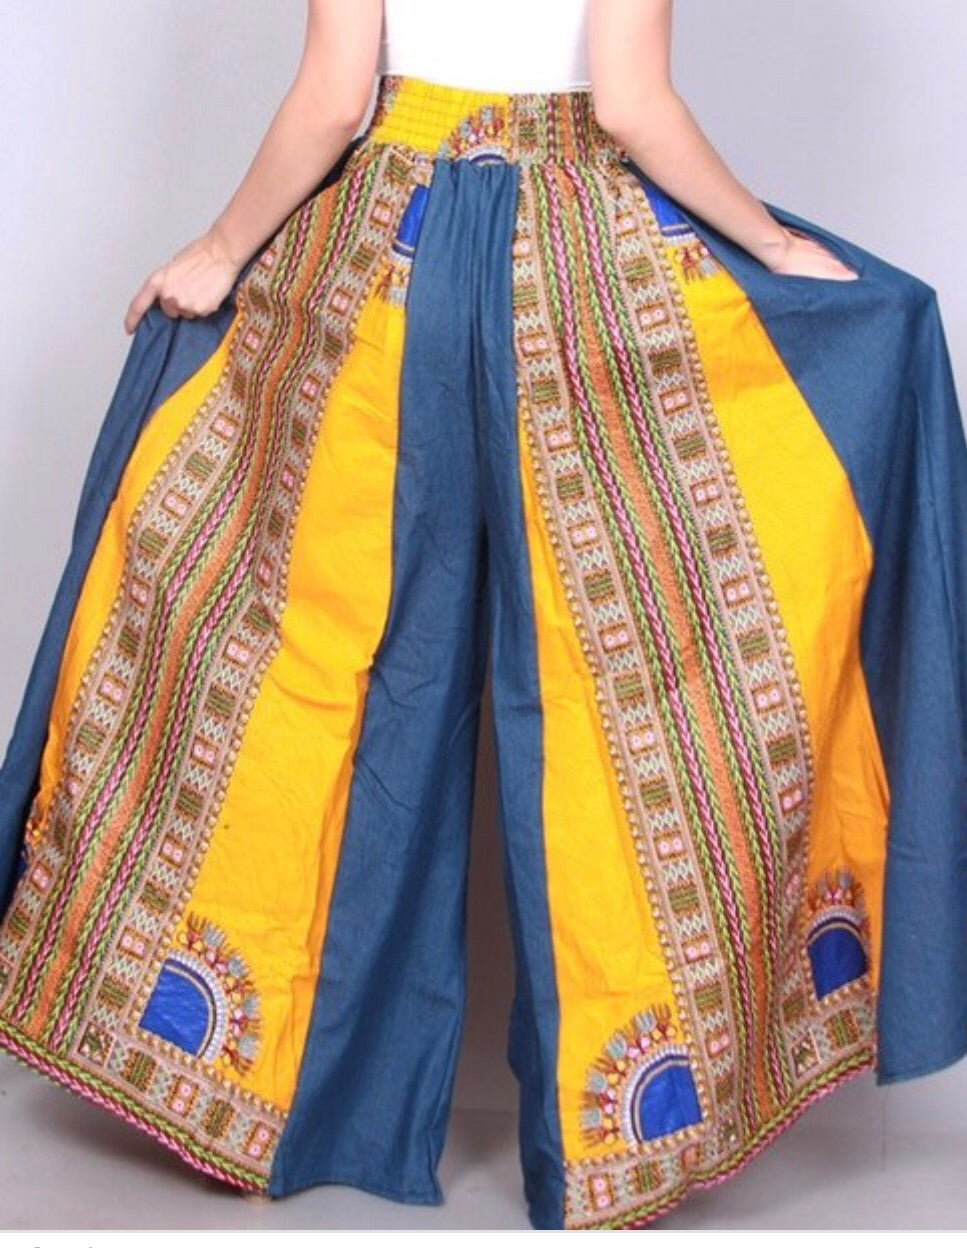 Denim/Dashiki Wide leg Pant - Bailey Sayge